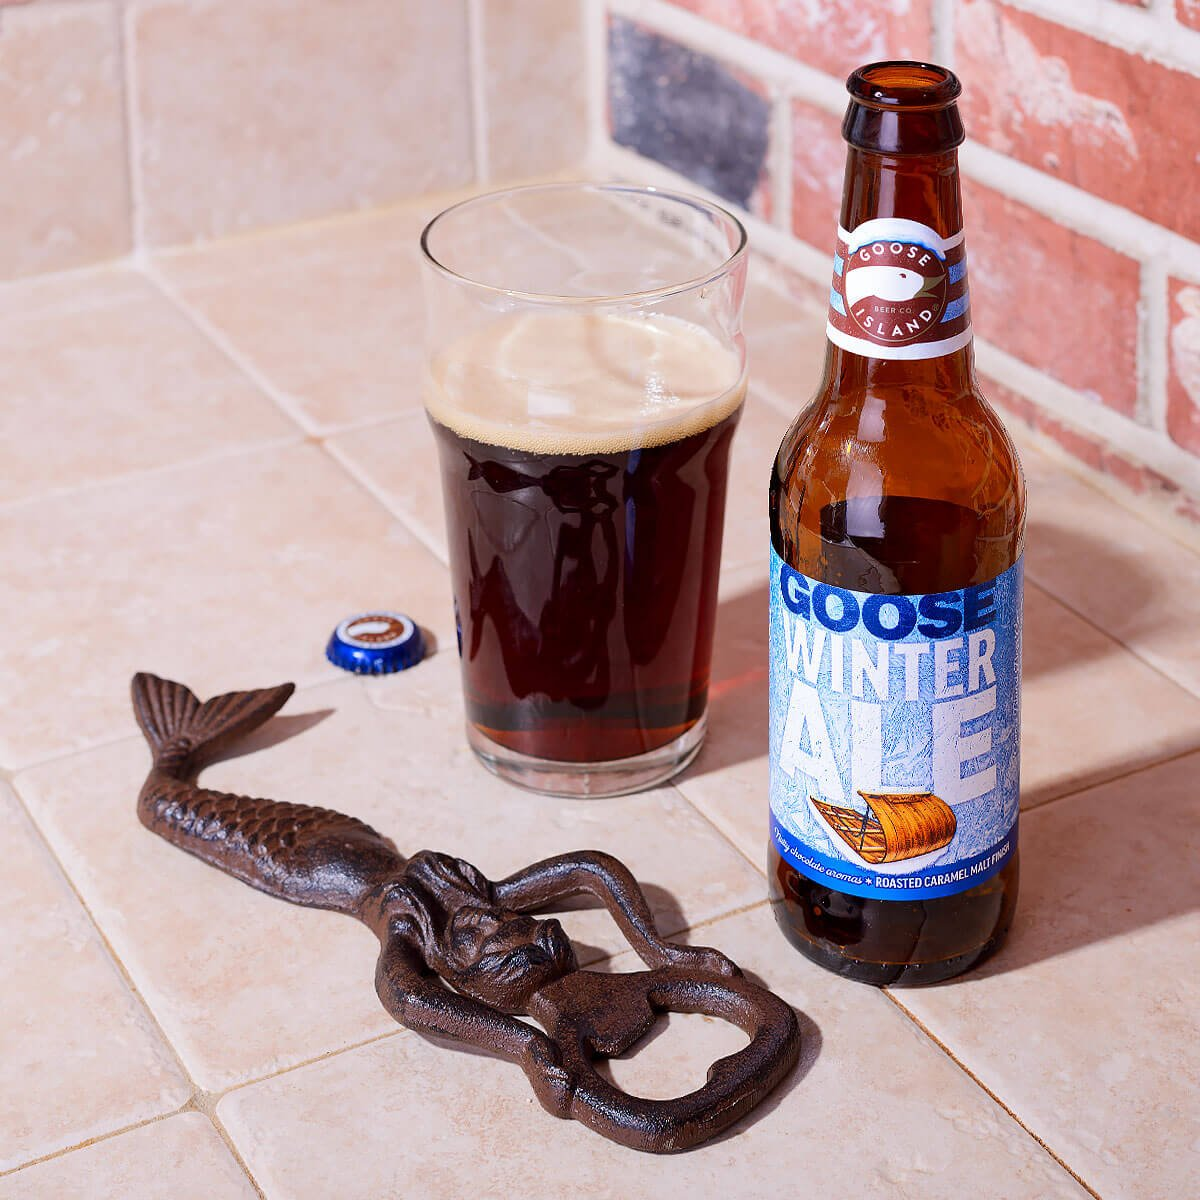 Goose Island Winter Ale, an American Brown Ale by Goose Island Beer Co.